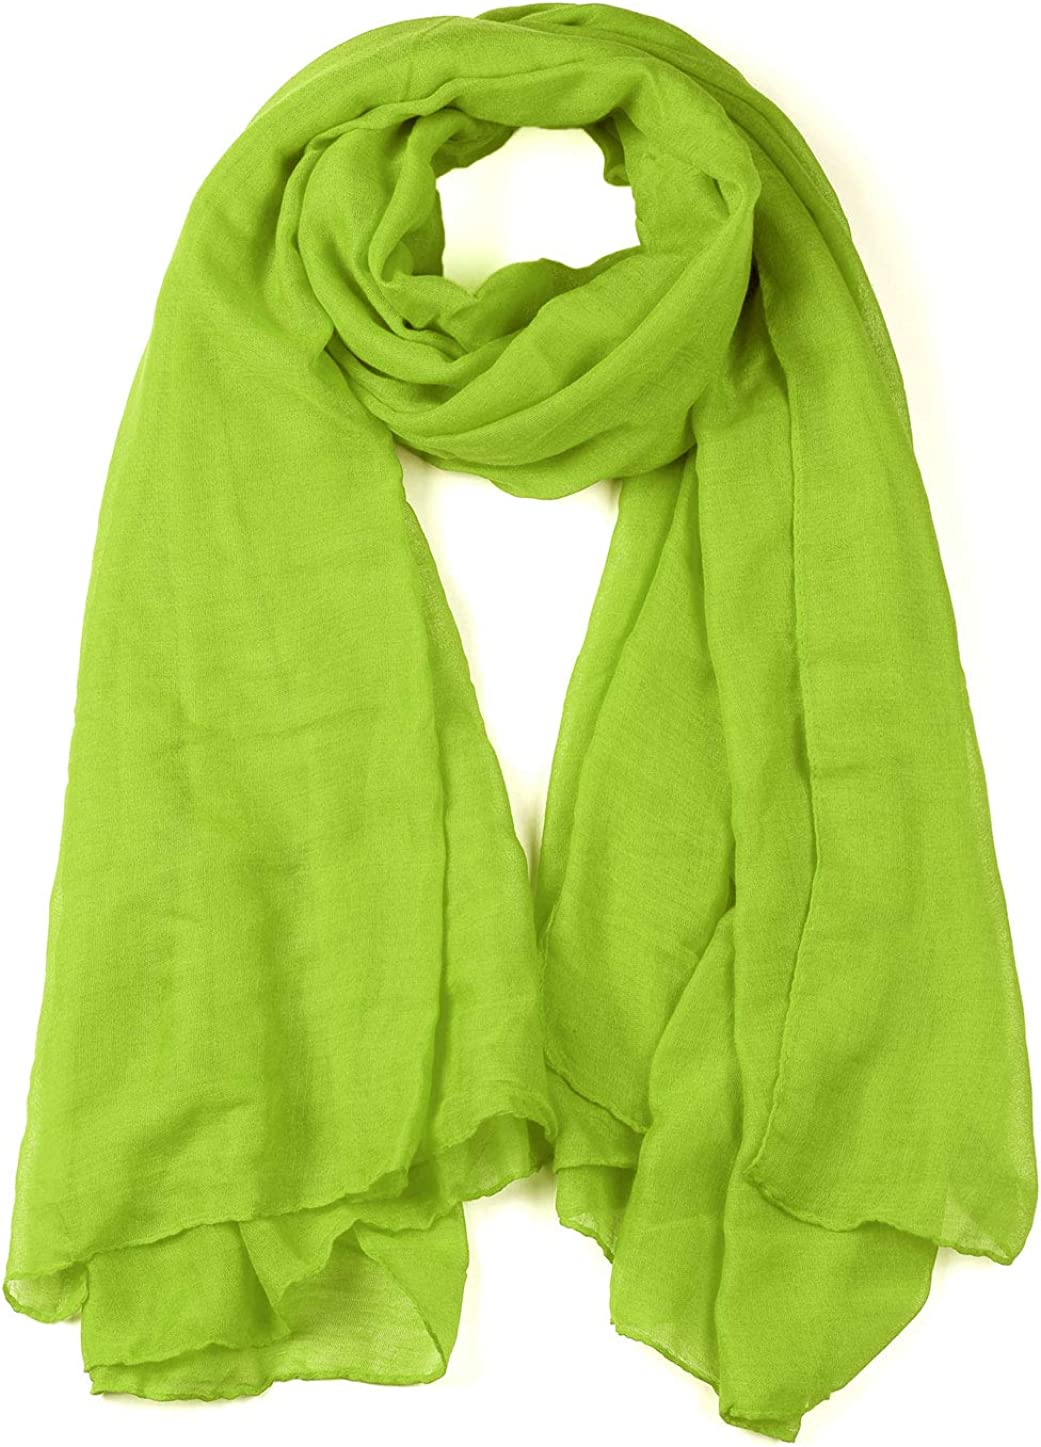 uxcell Women Lightweight Super Large Summer Beach Wrap Scarves Solid Color Soft Long Shawl